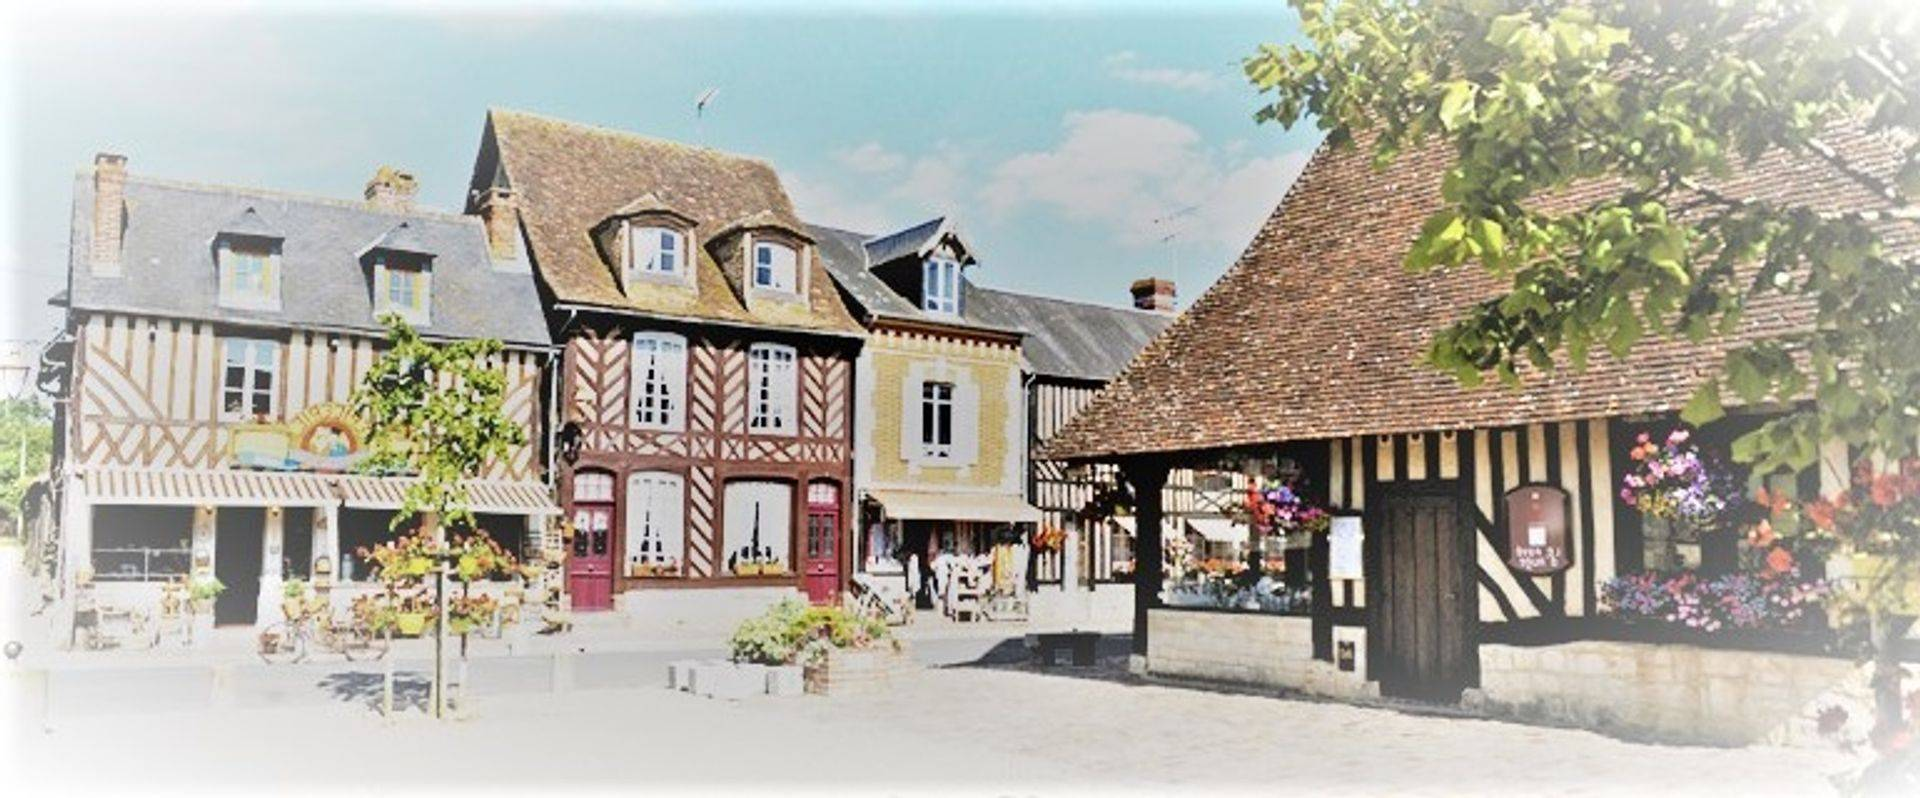 Beuvron en Auge, Normandy